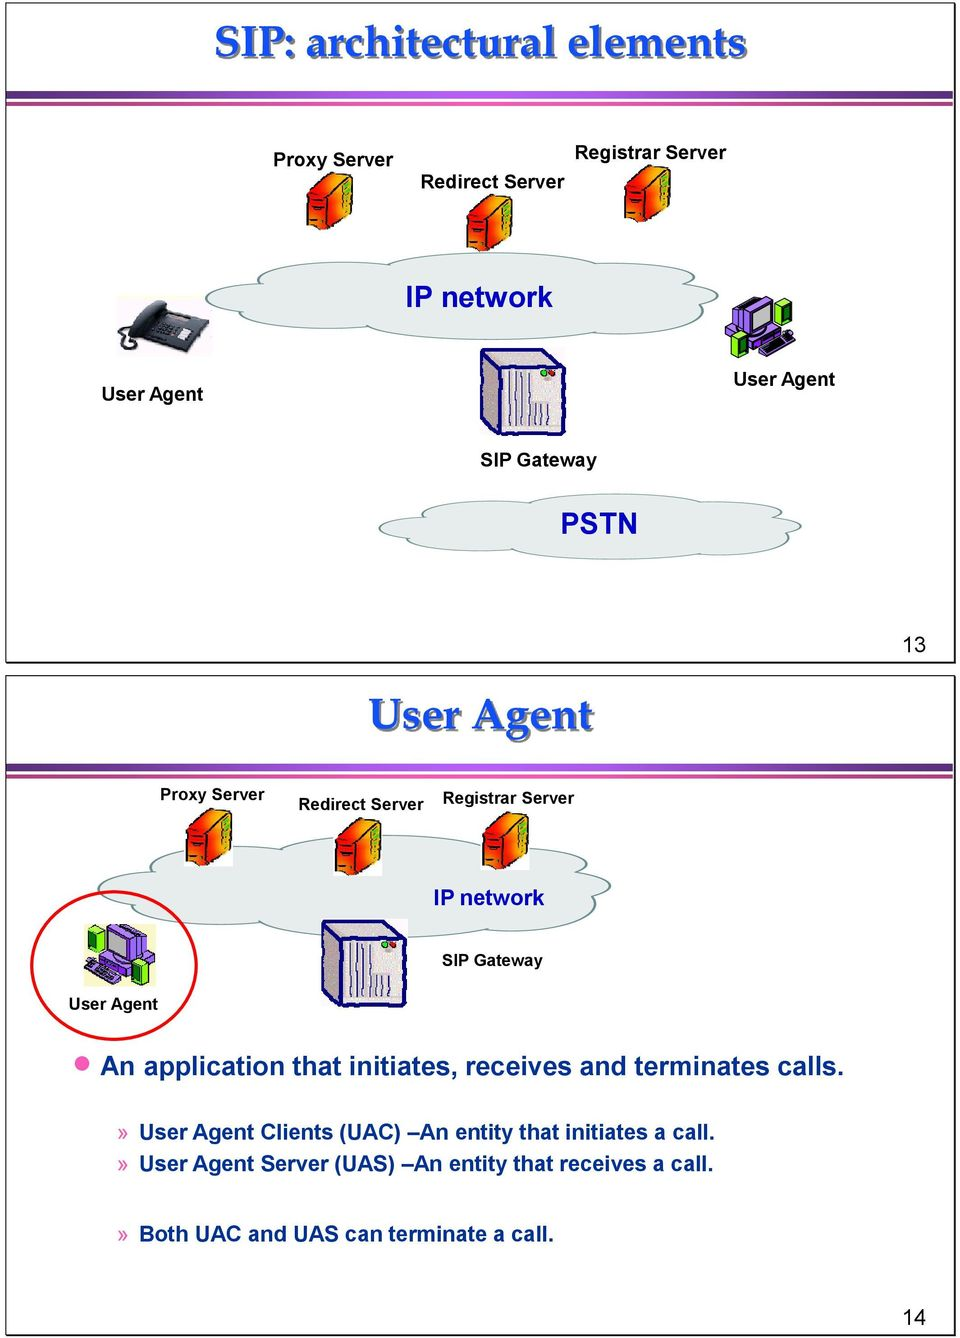 Agent An application that initiates, receives and terminates calls.